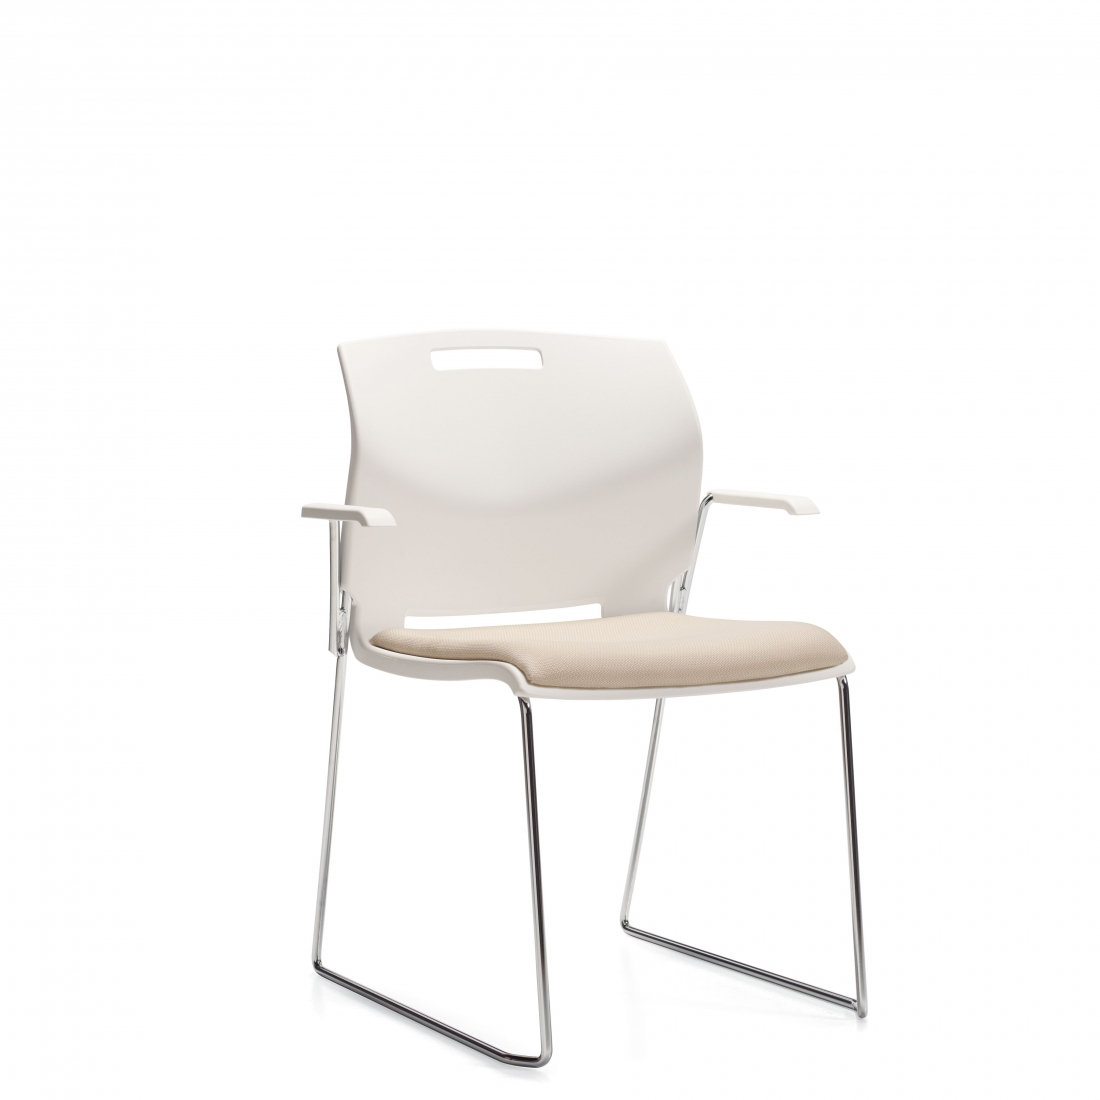 Popcorn Arm Chair with Upholstered Seat